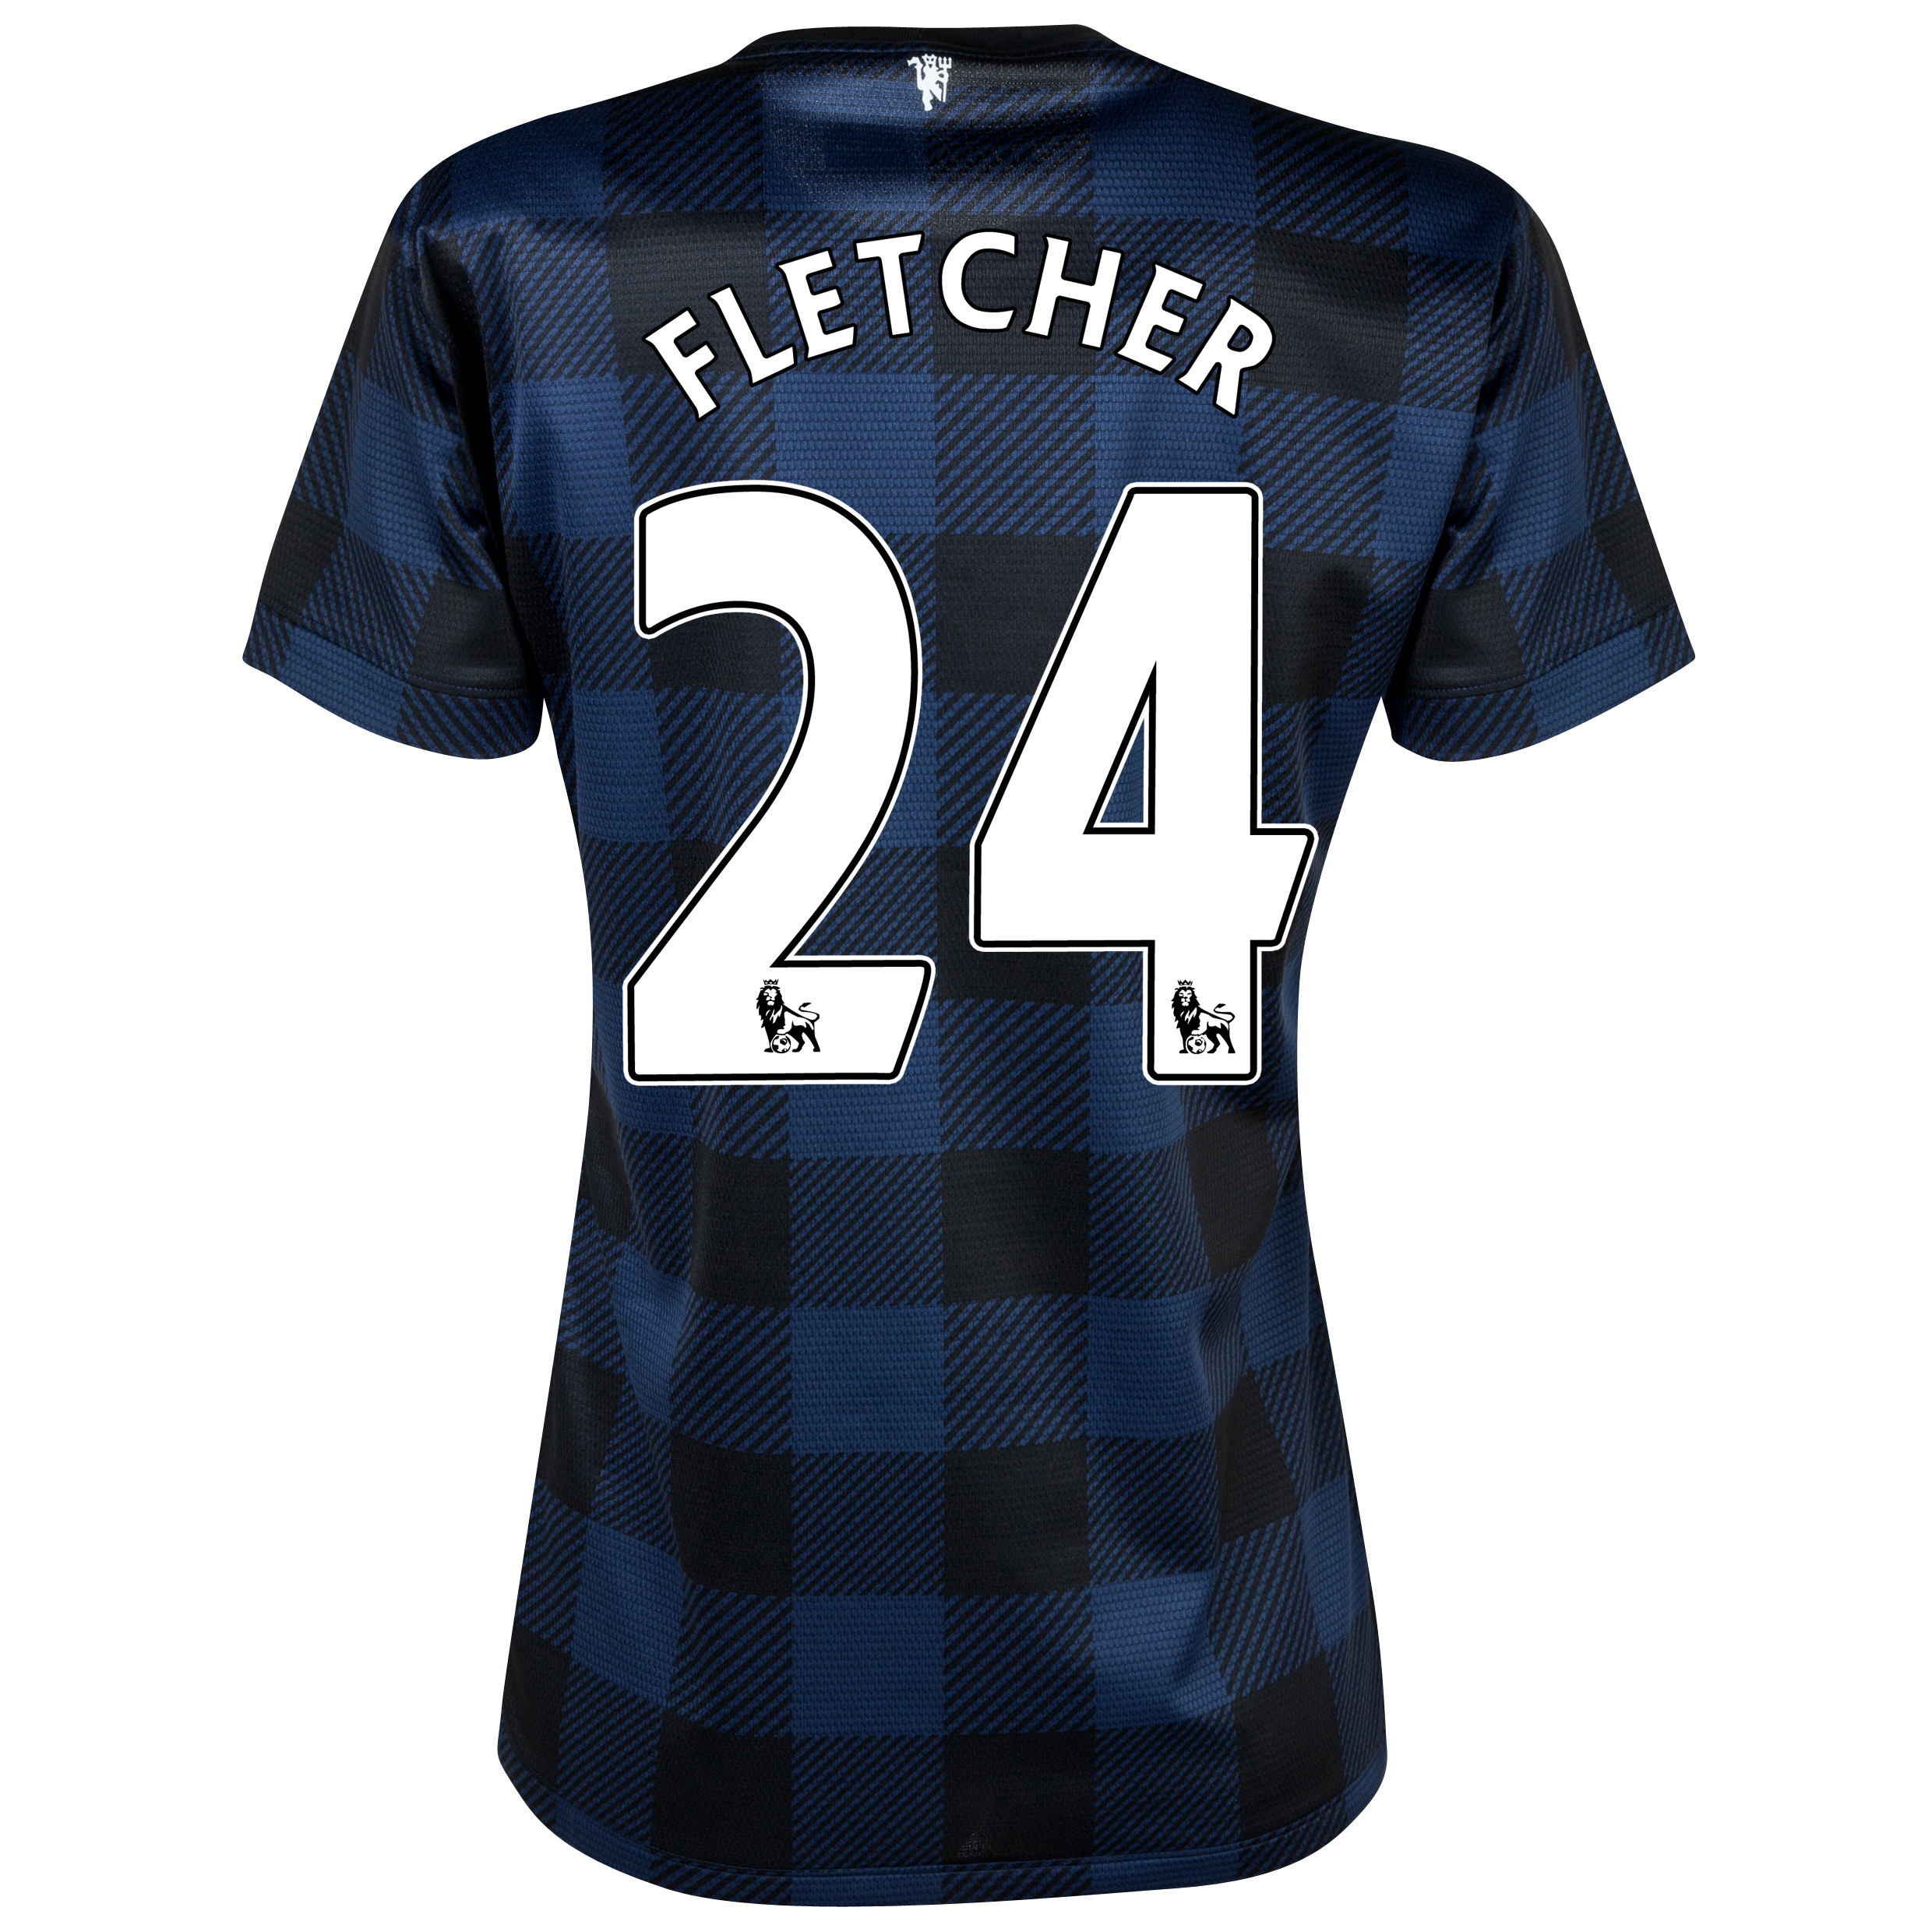 Manchester United Away Shirt 2013/14 - Womens with Fletcher 24 printing